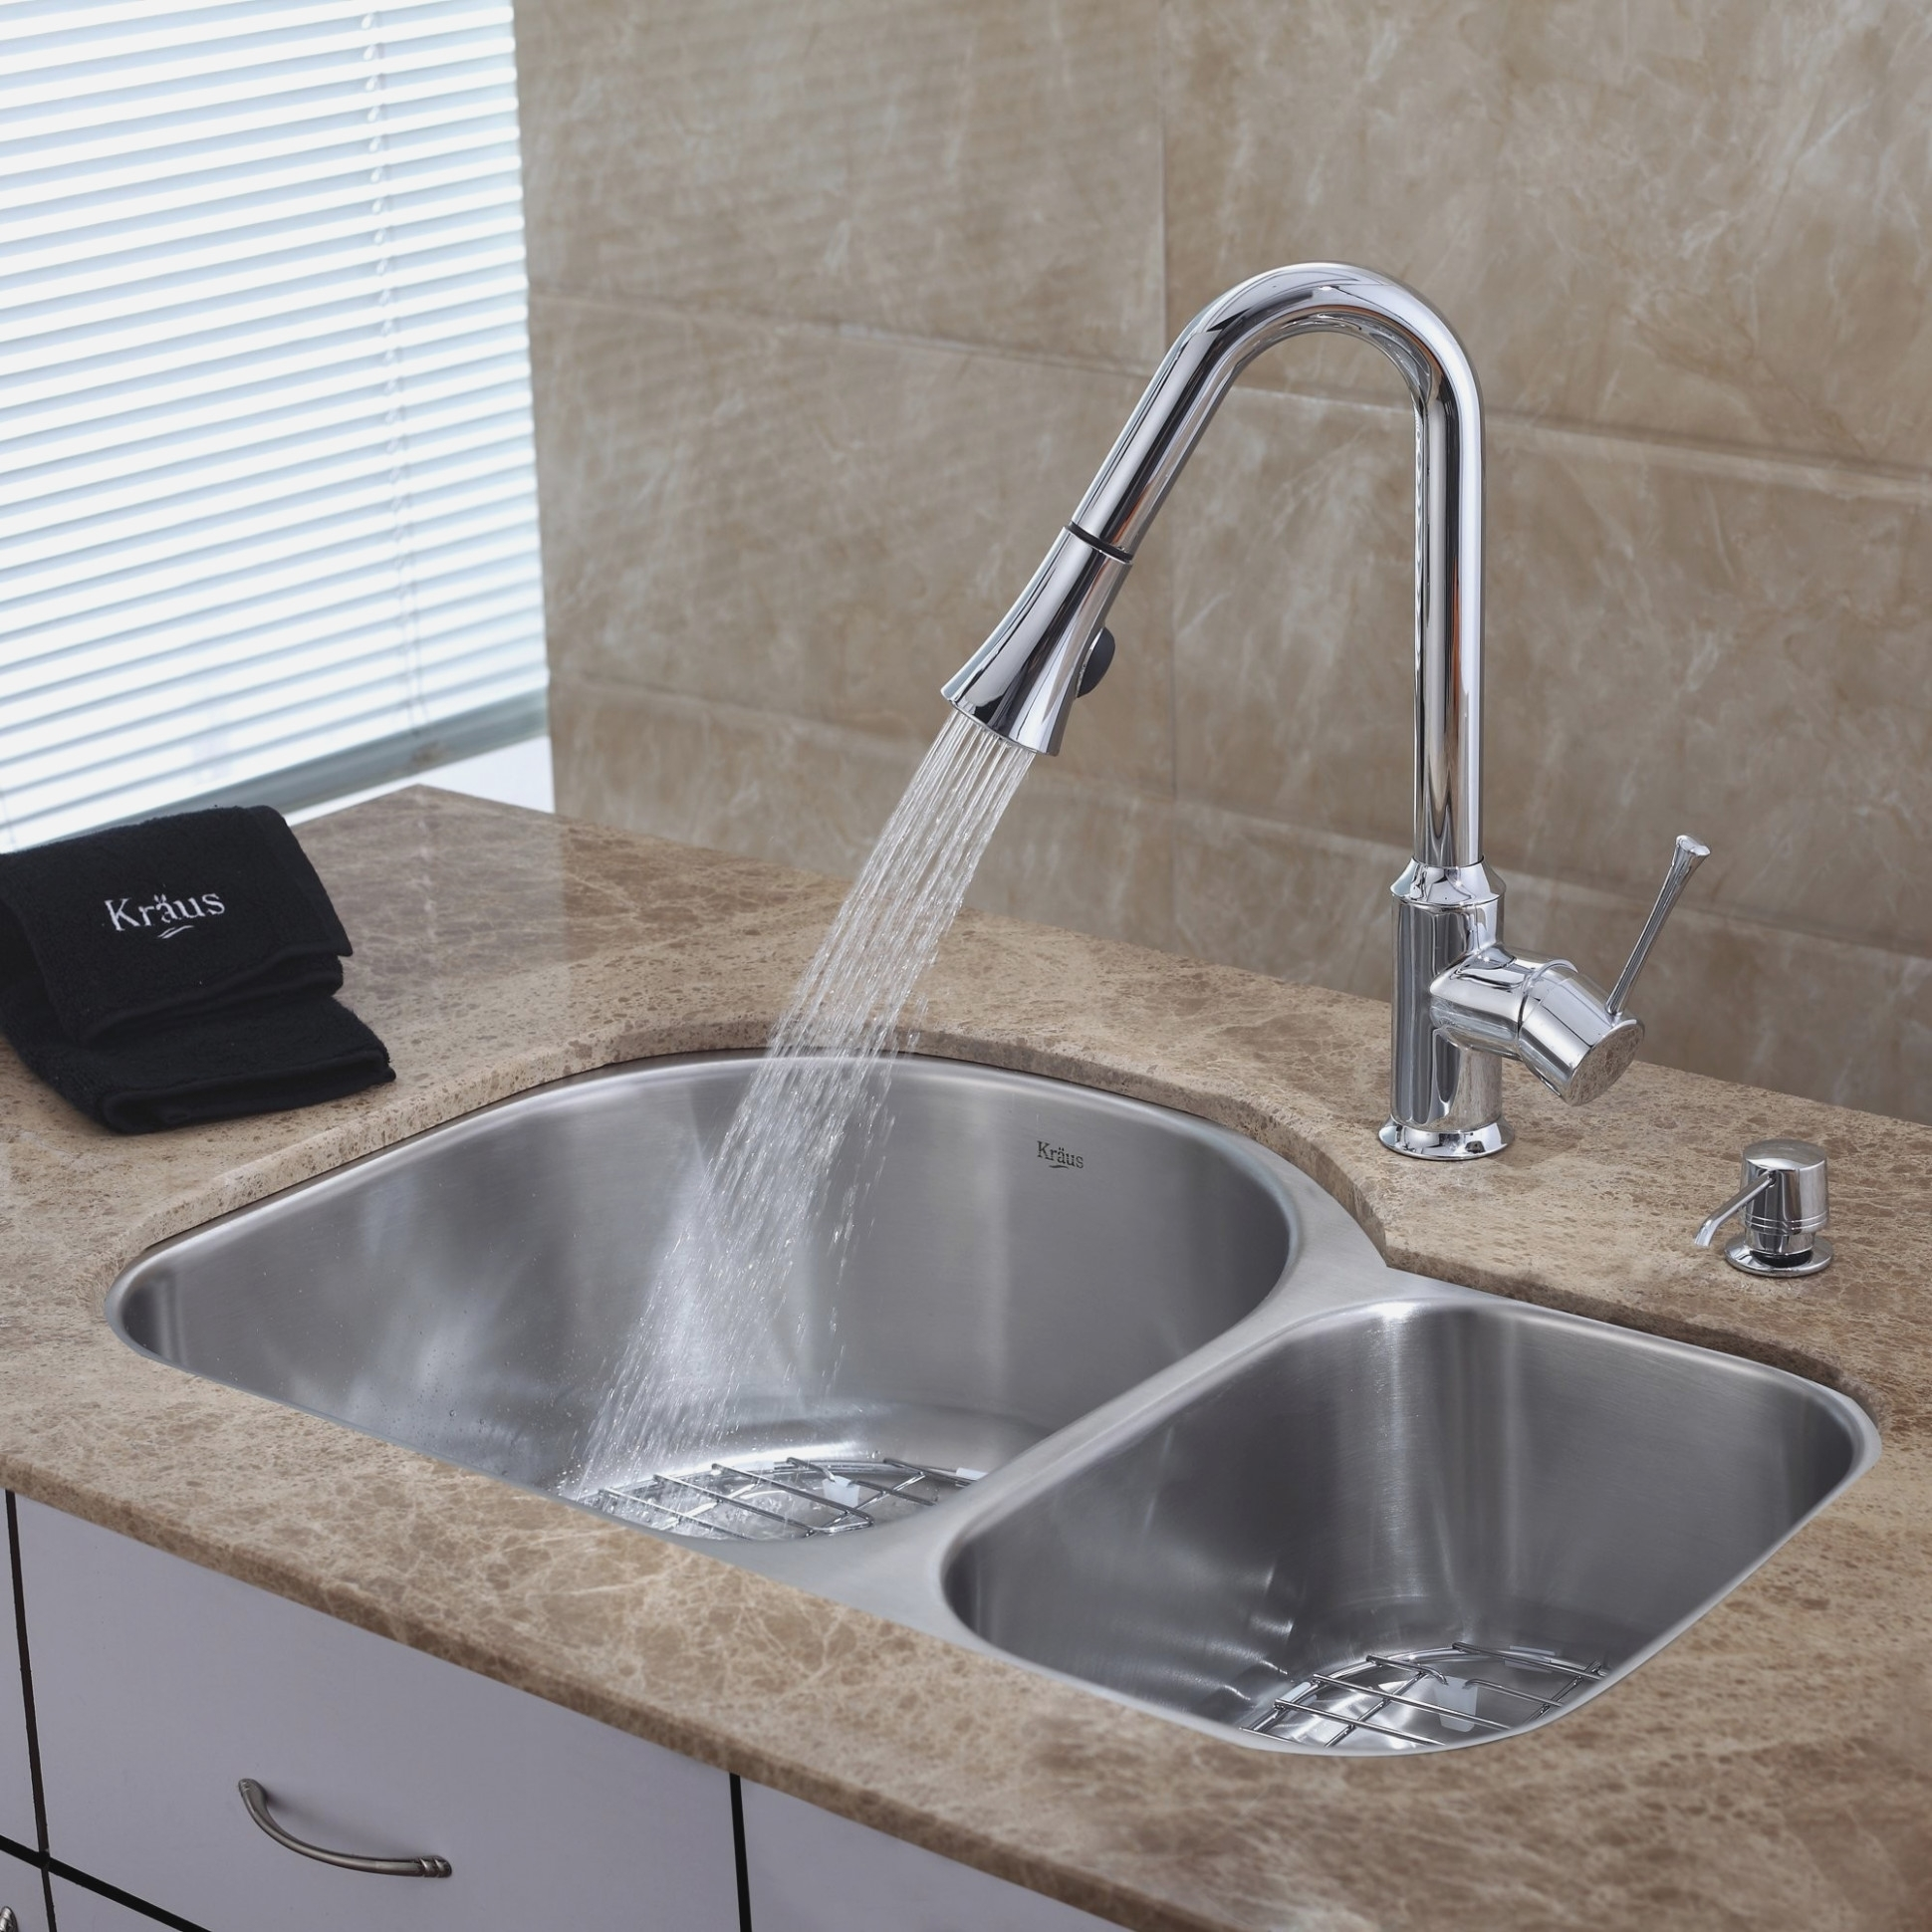 Ace Hardware Kitchen Faucets.Ace Hardware Kitchen Faucets Easy Basic Schmidt Gallery Design